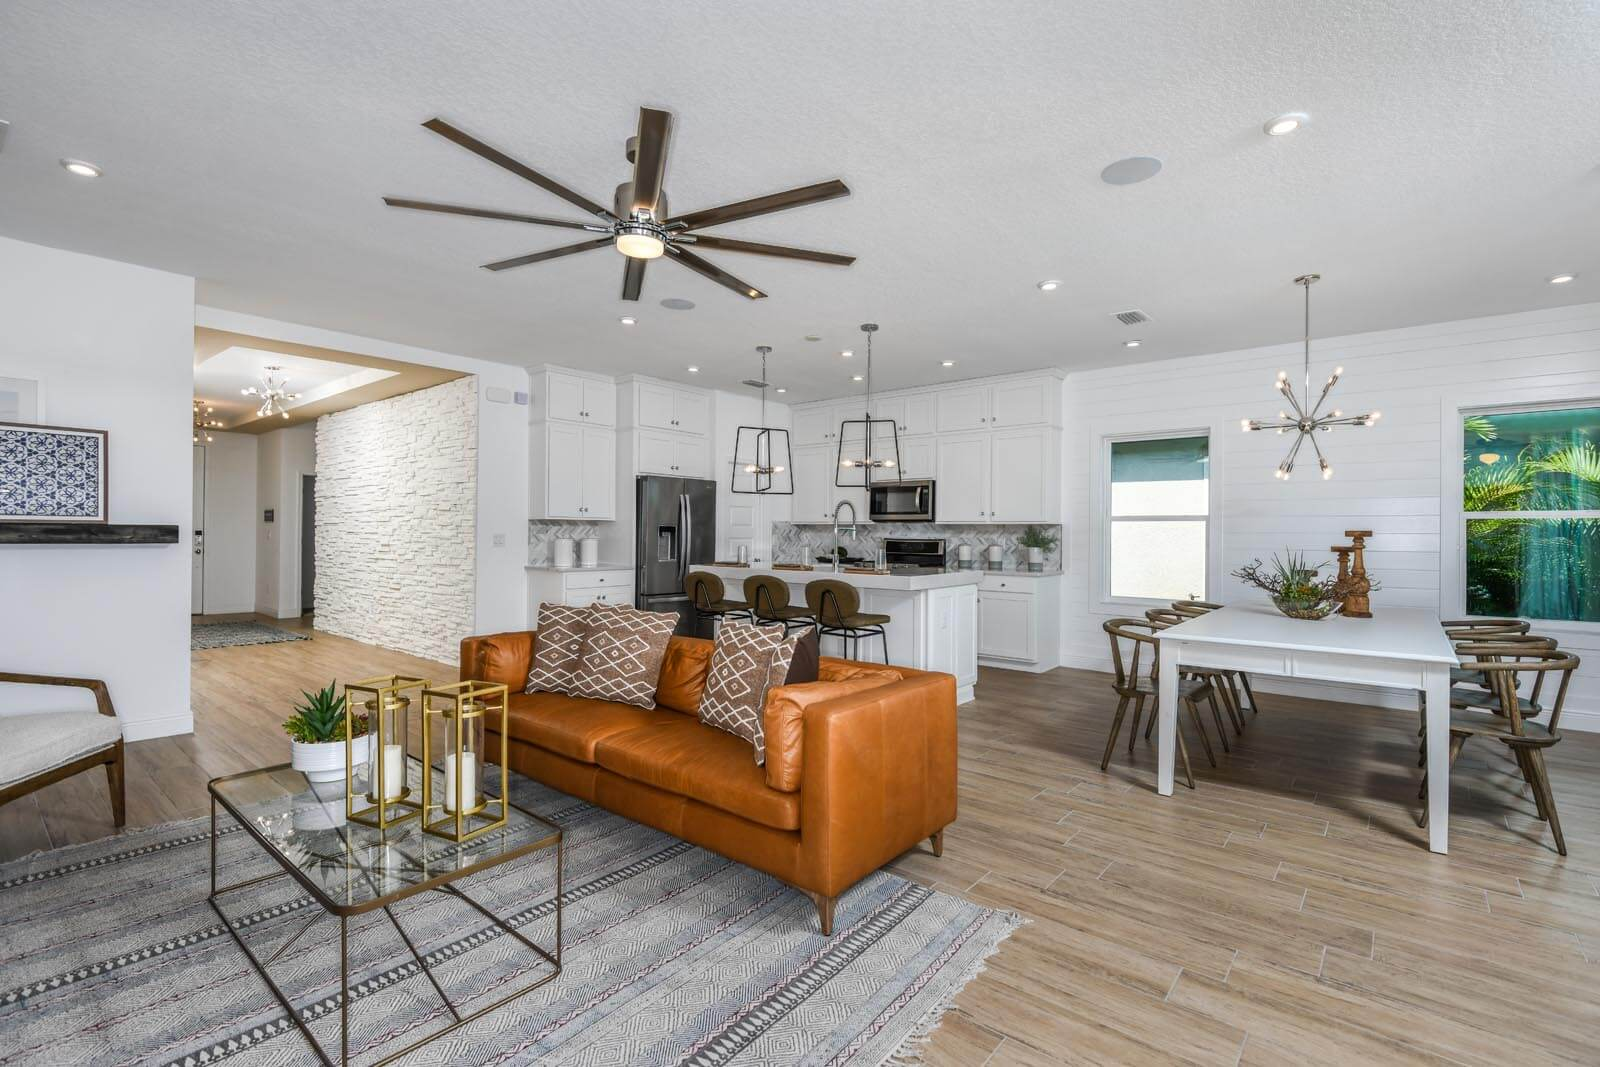 New Tampa  Model Home Brighton 2 in Waterset, located at 5412 Silver Sun Dr Apollo Beach, FL Built By Cardel Homes Tampa